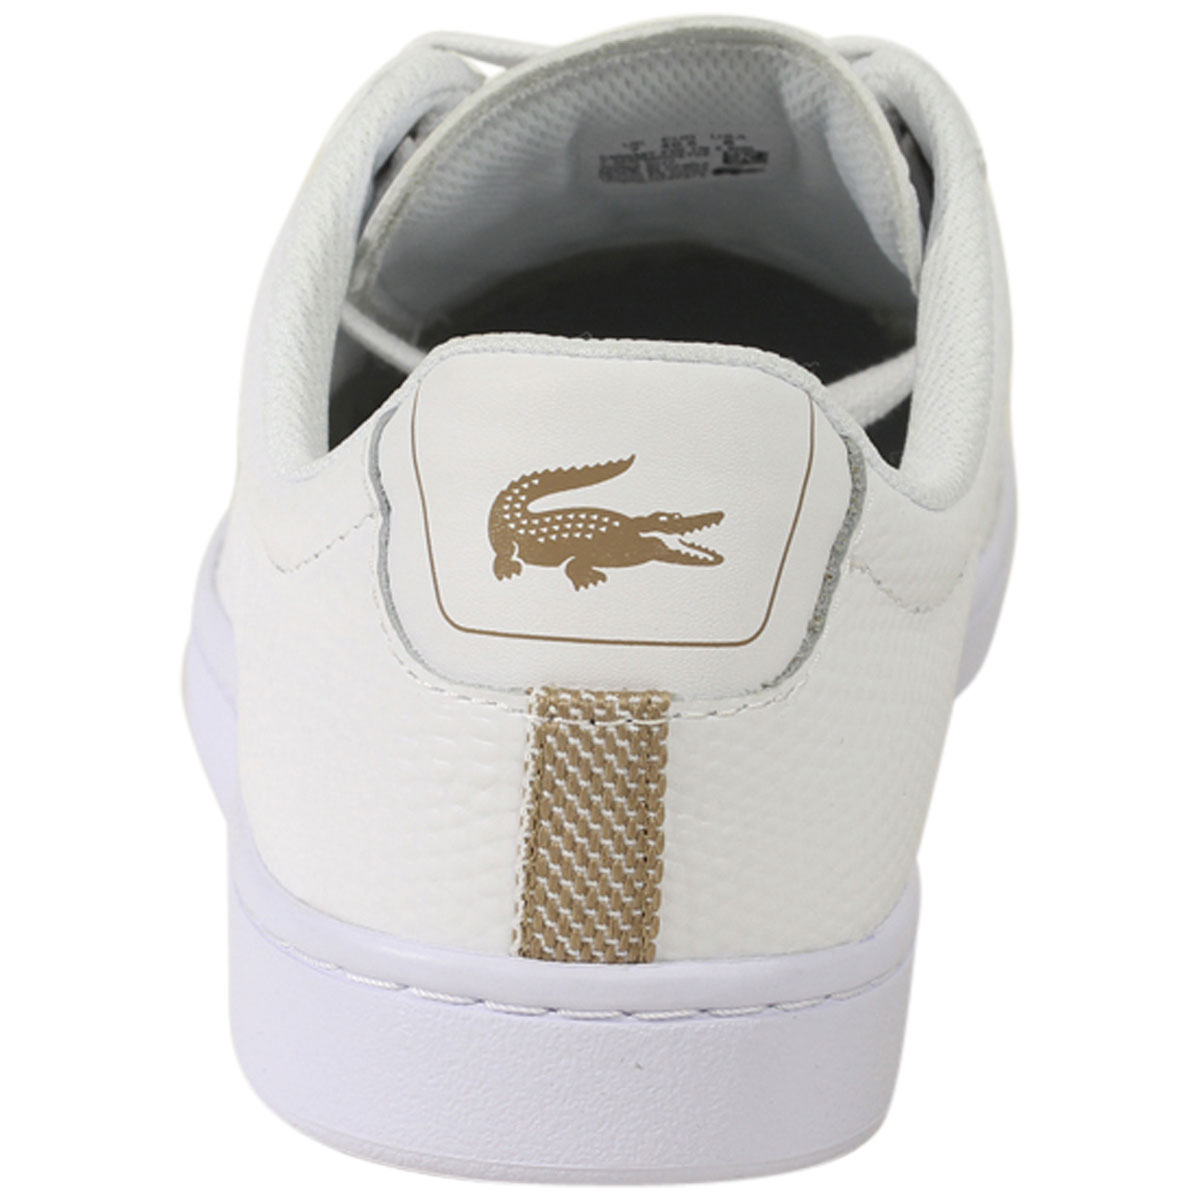 Lacoste-Men-039-s-Carnaby-EVO-118-Trainers-Sneakers-Shoes thumbnail 25